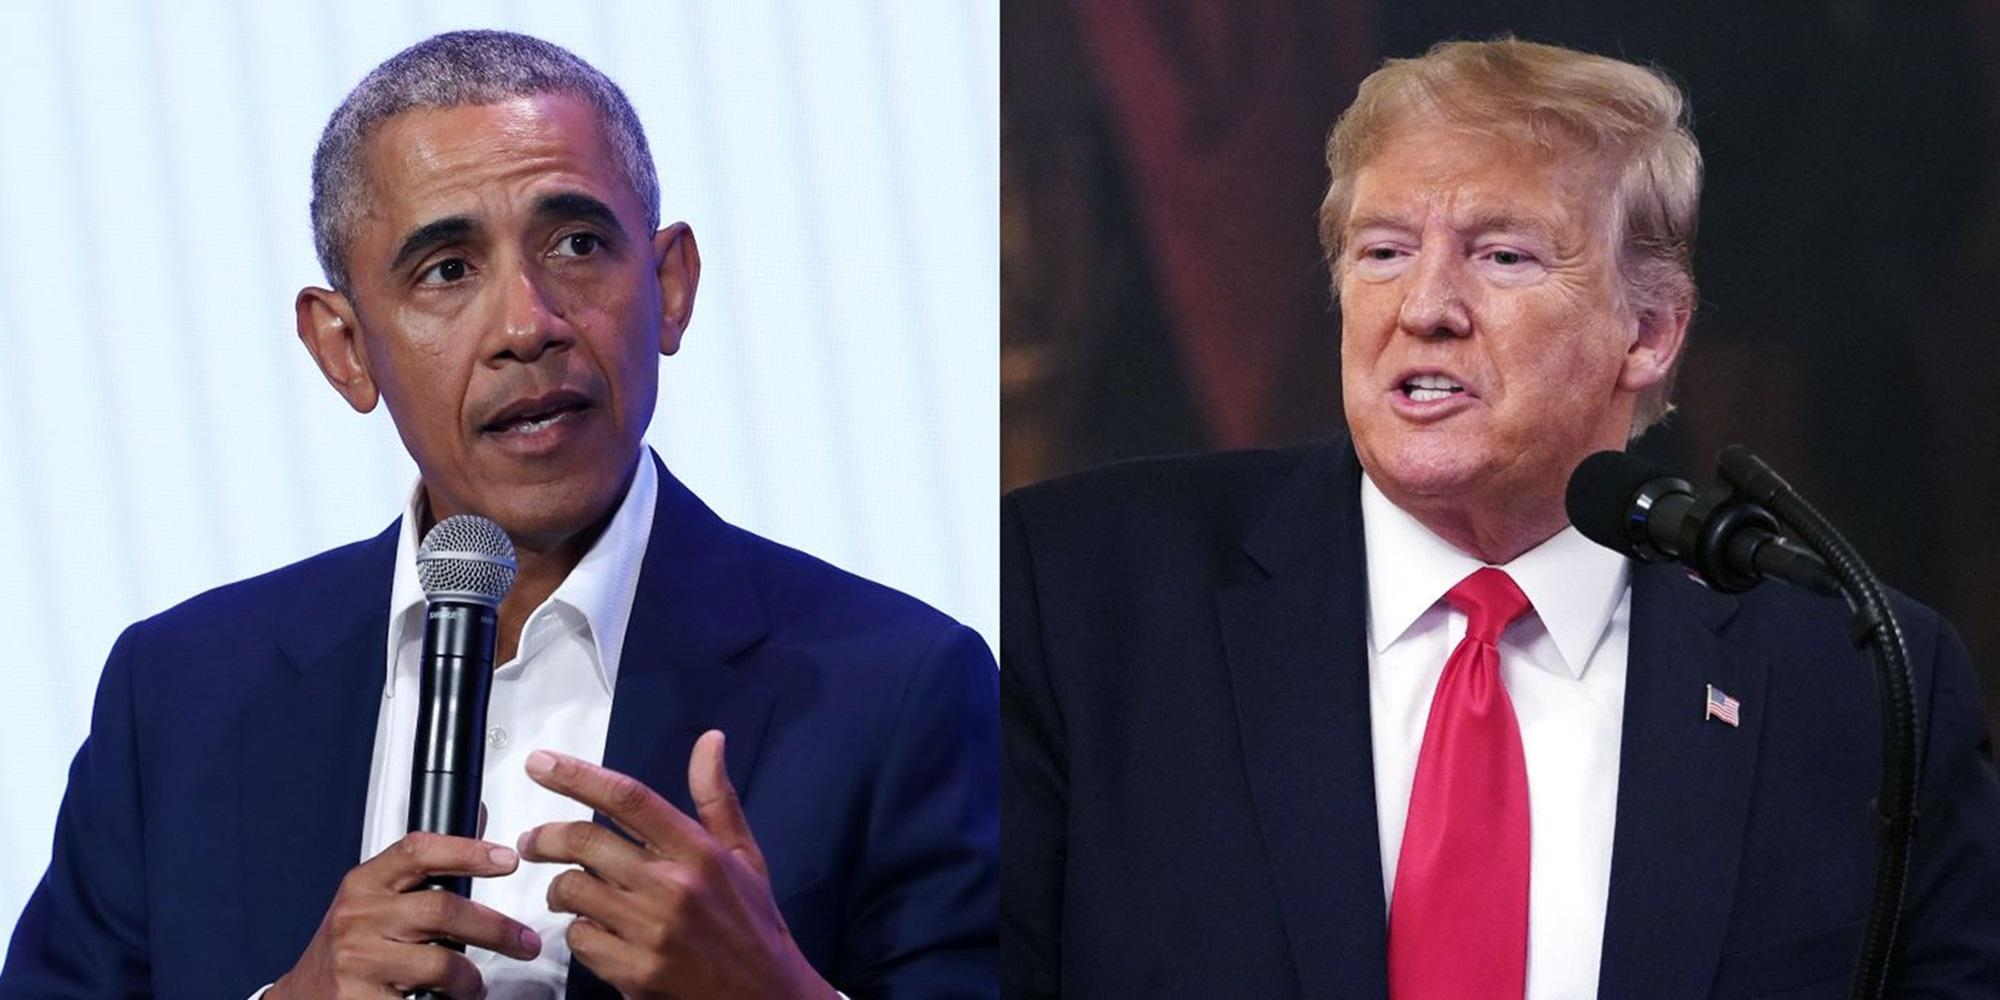 Barack Obama Subtly Criticizes Donald Trump For This Obsession